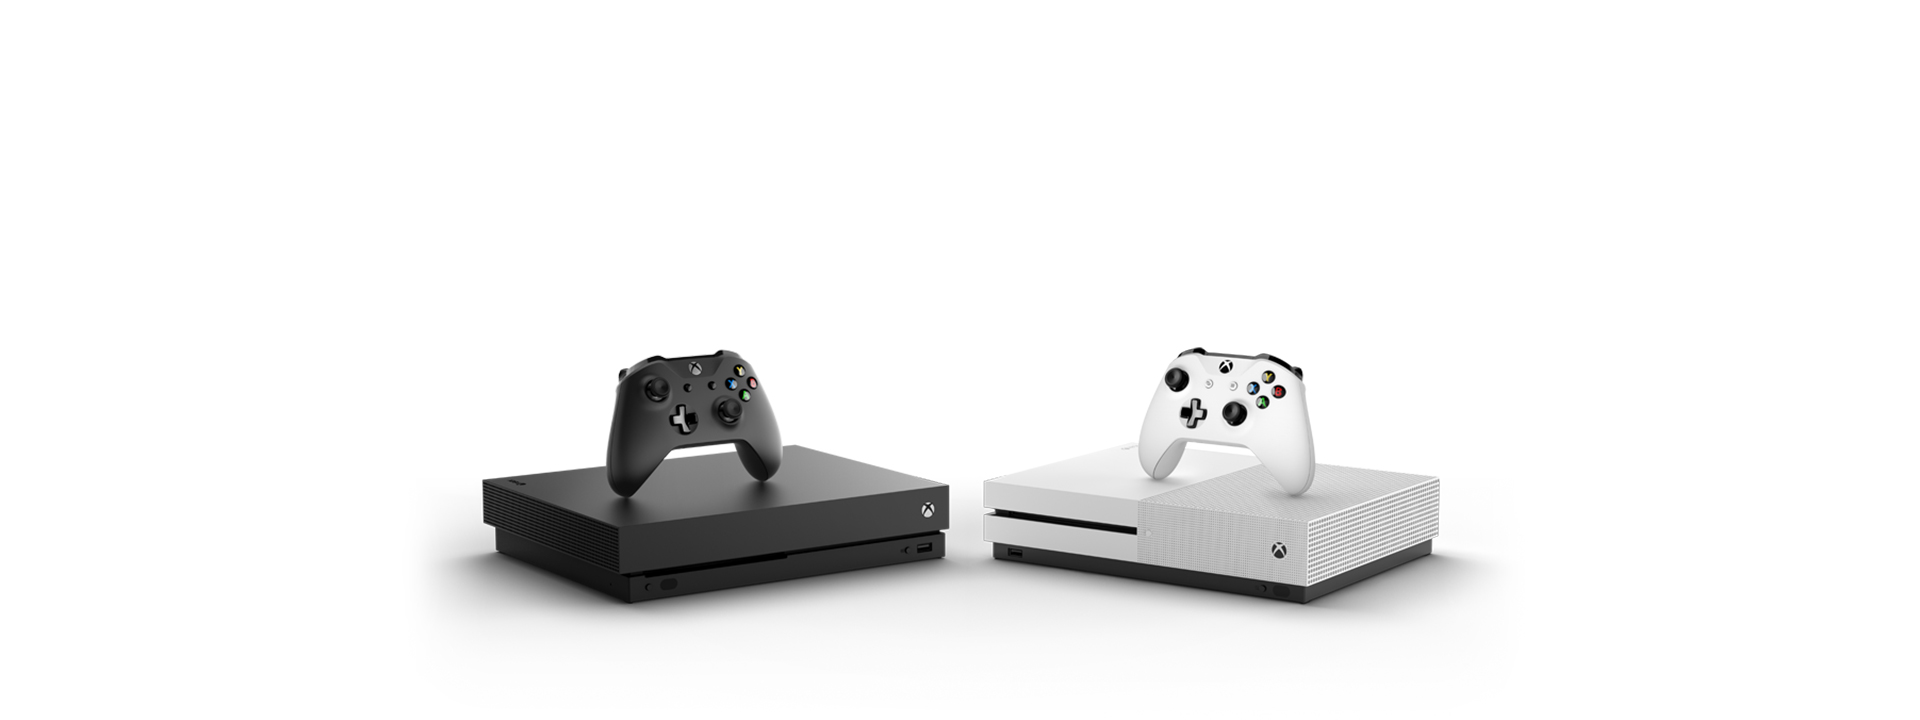 Xbox and Xbox One